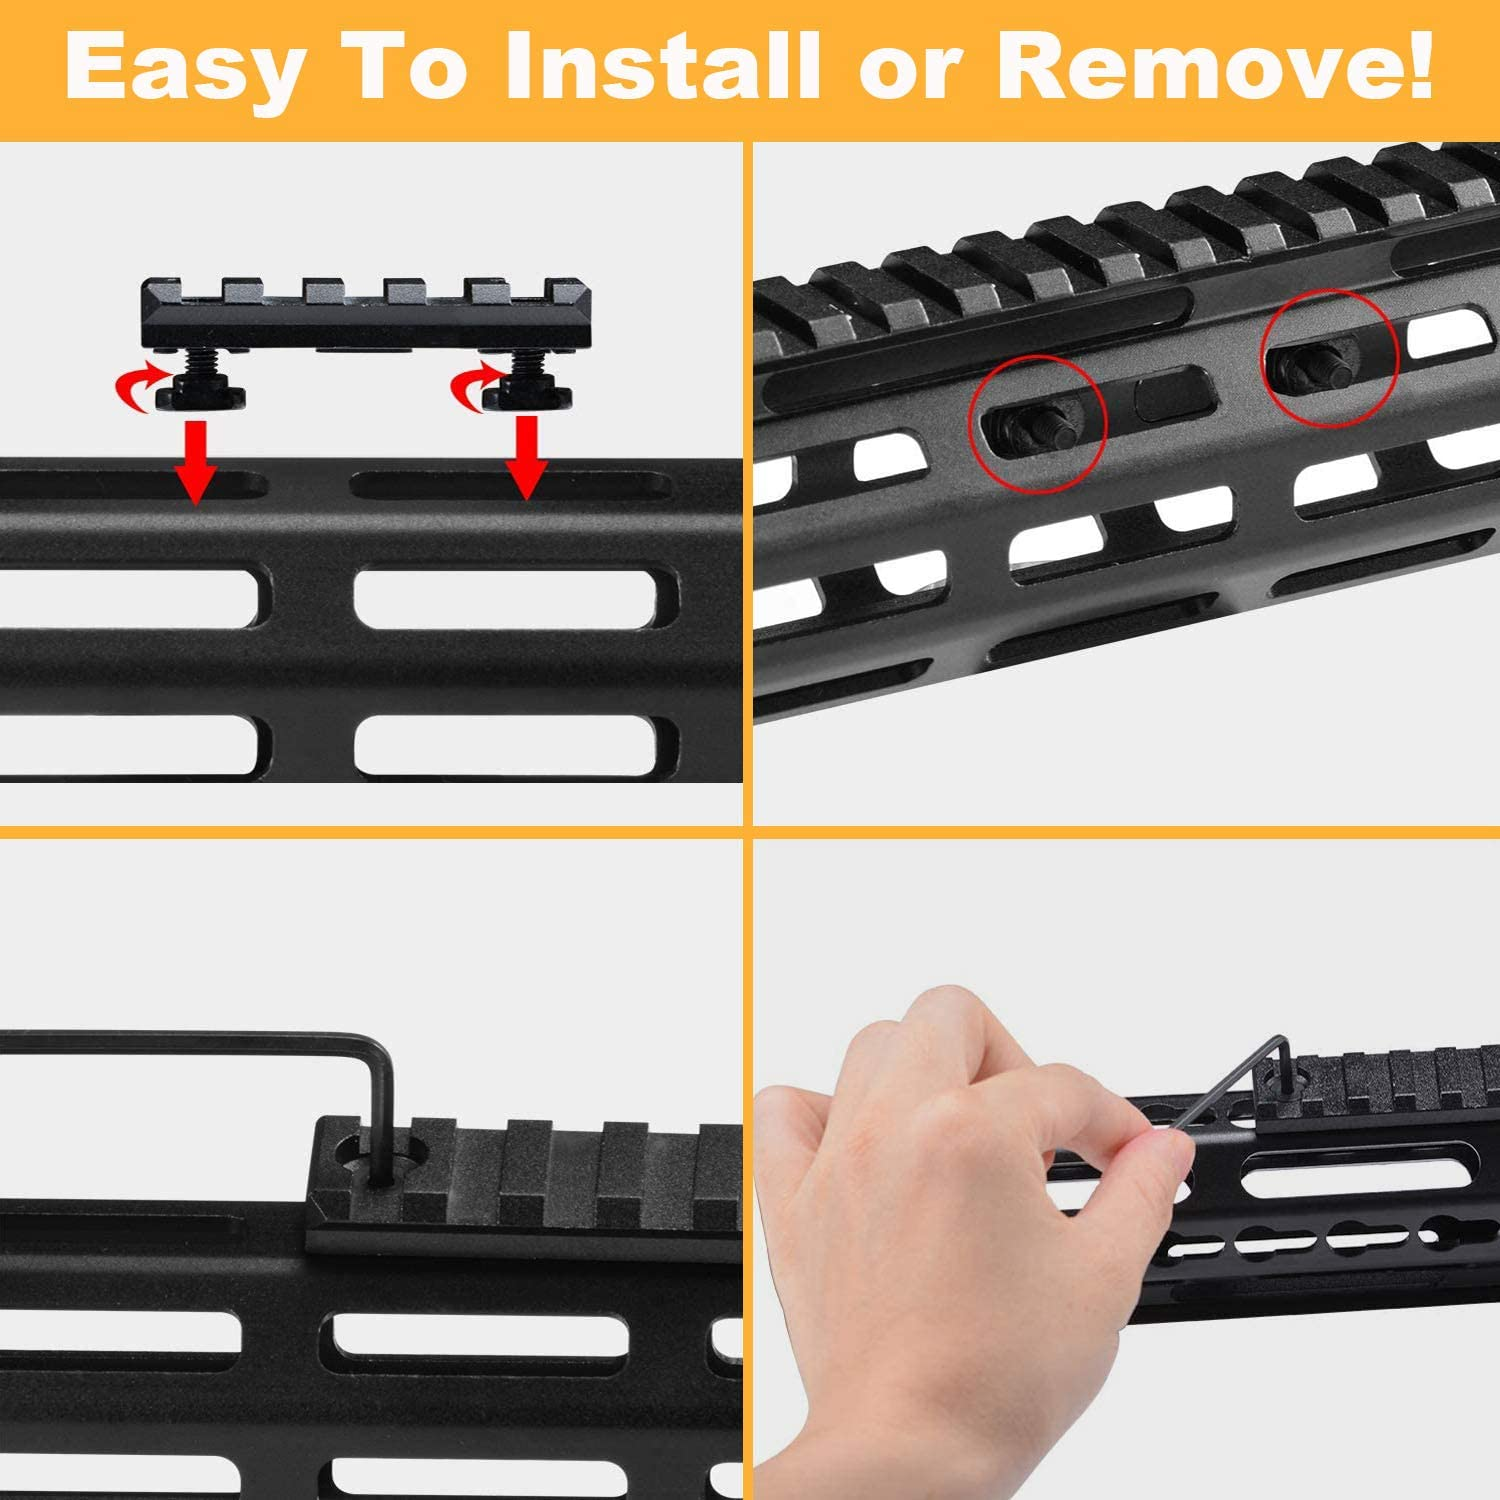 3 Allen Wrench 3 5 7 13 Slots Mlok Aluminum Picatinny Rails Section Adapter for M LOK Systems with 9 T-Nuts 9 Screws GOHIKING M-Lok Picatinny Rail 4 Pack